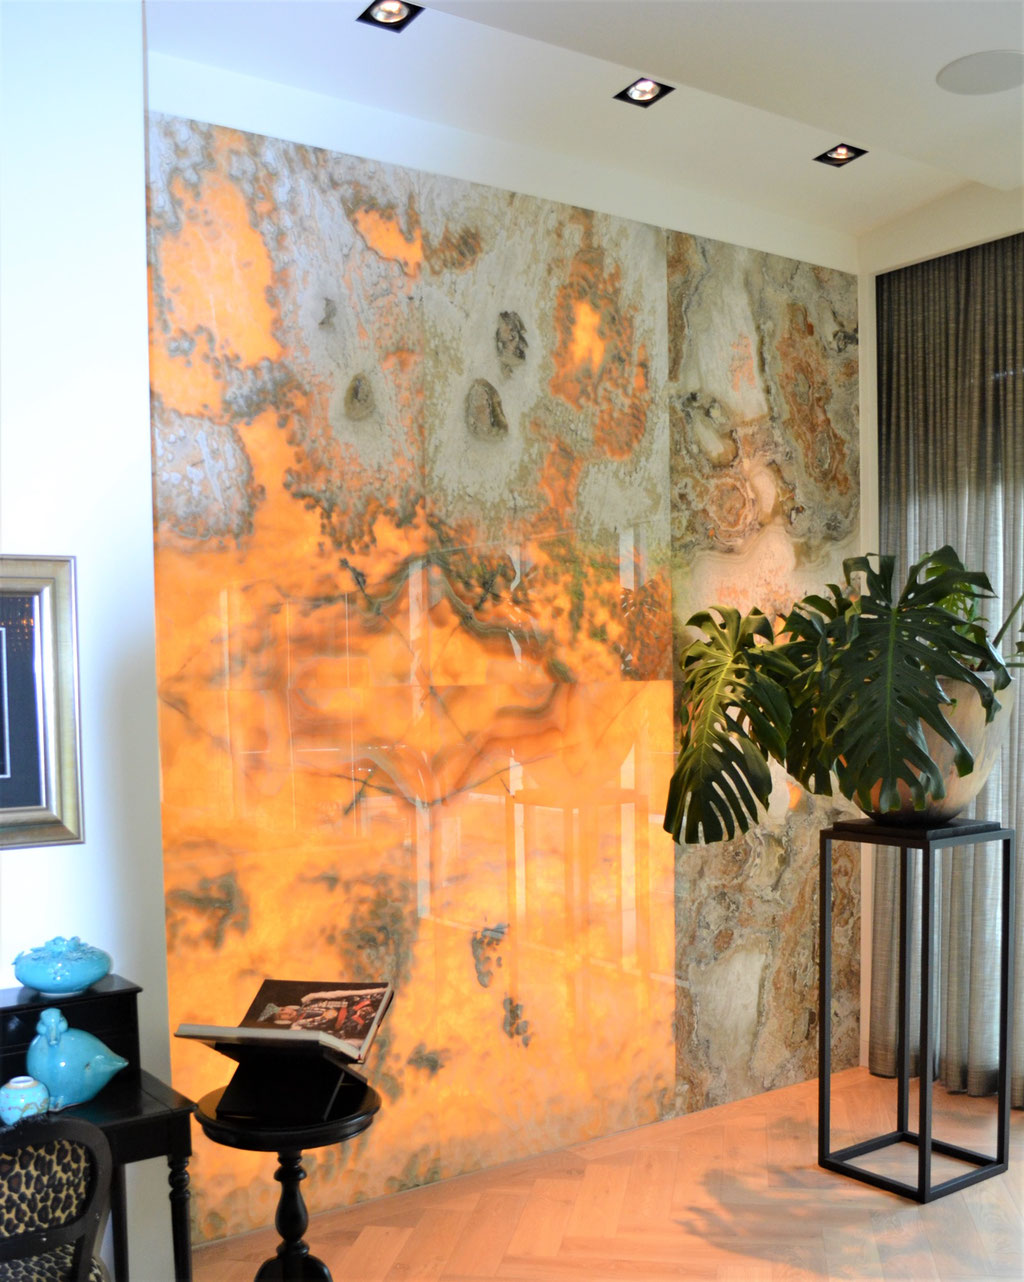 Onyx Arco Iris backlit feature wall